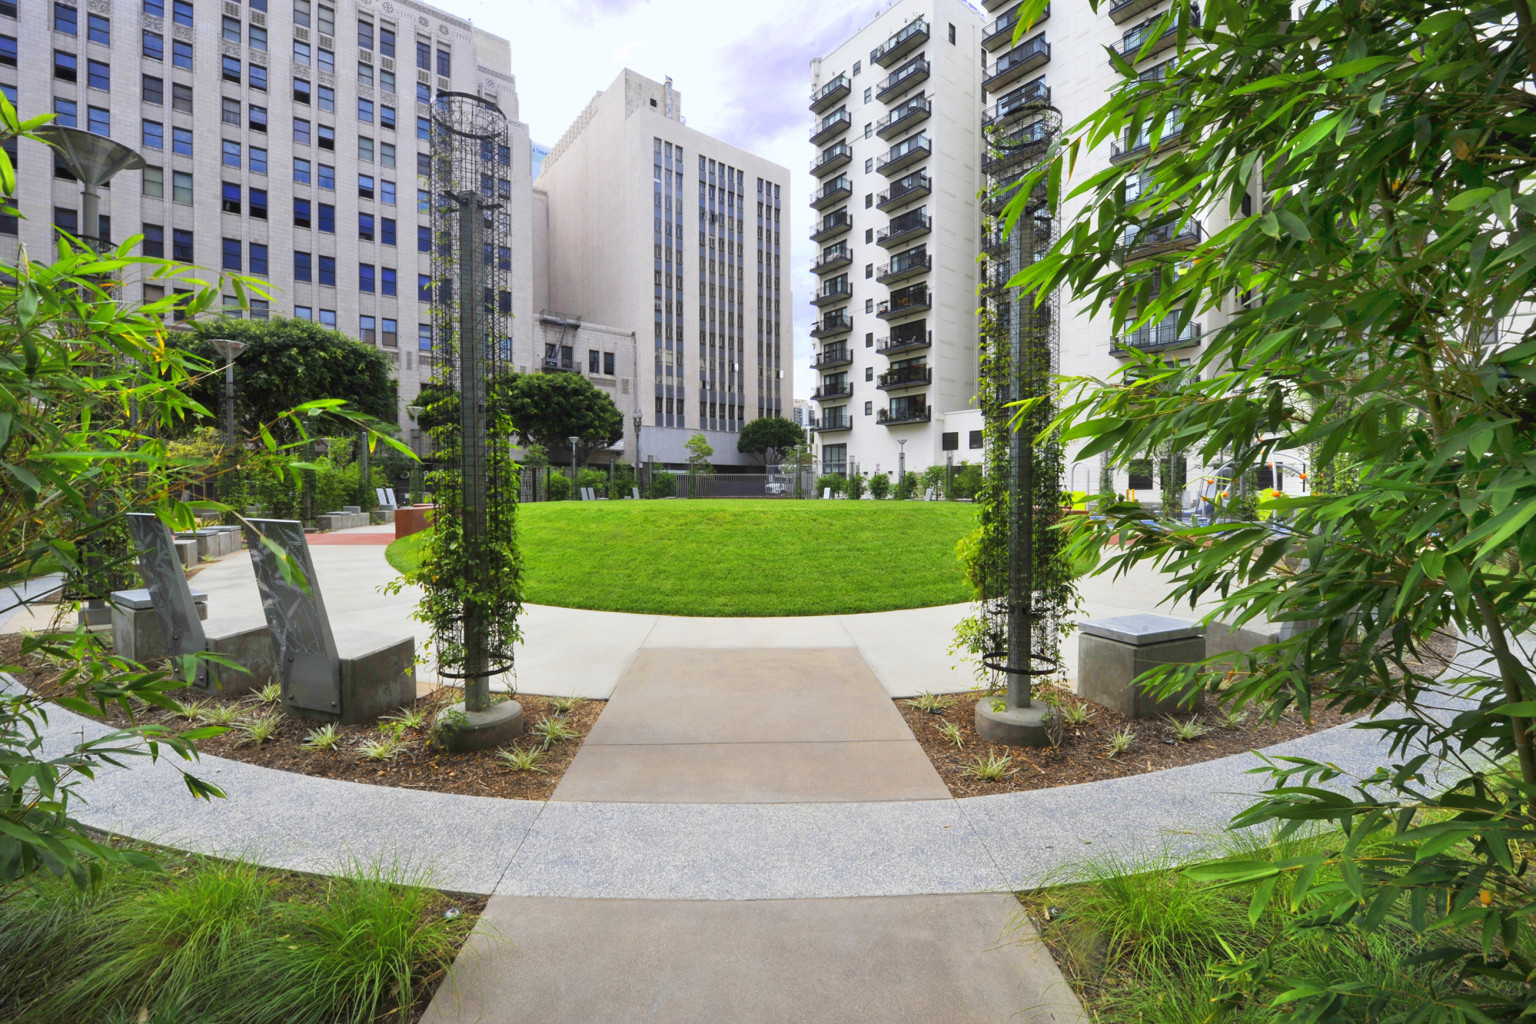 Lehrer Architects Collaborates With Los Angeles City On